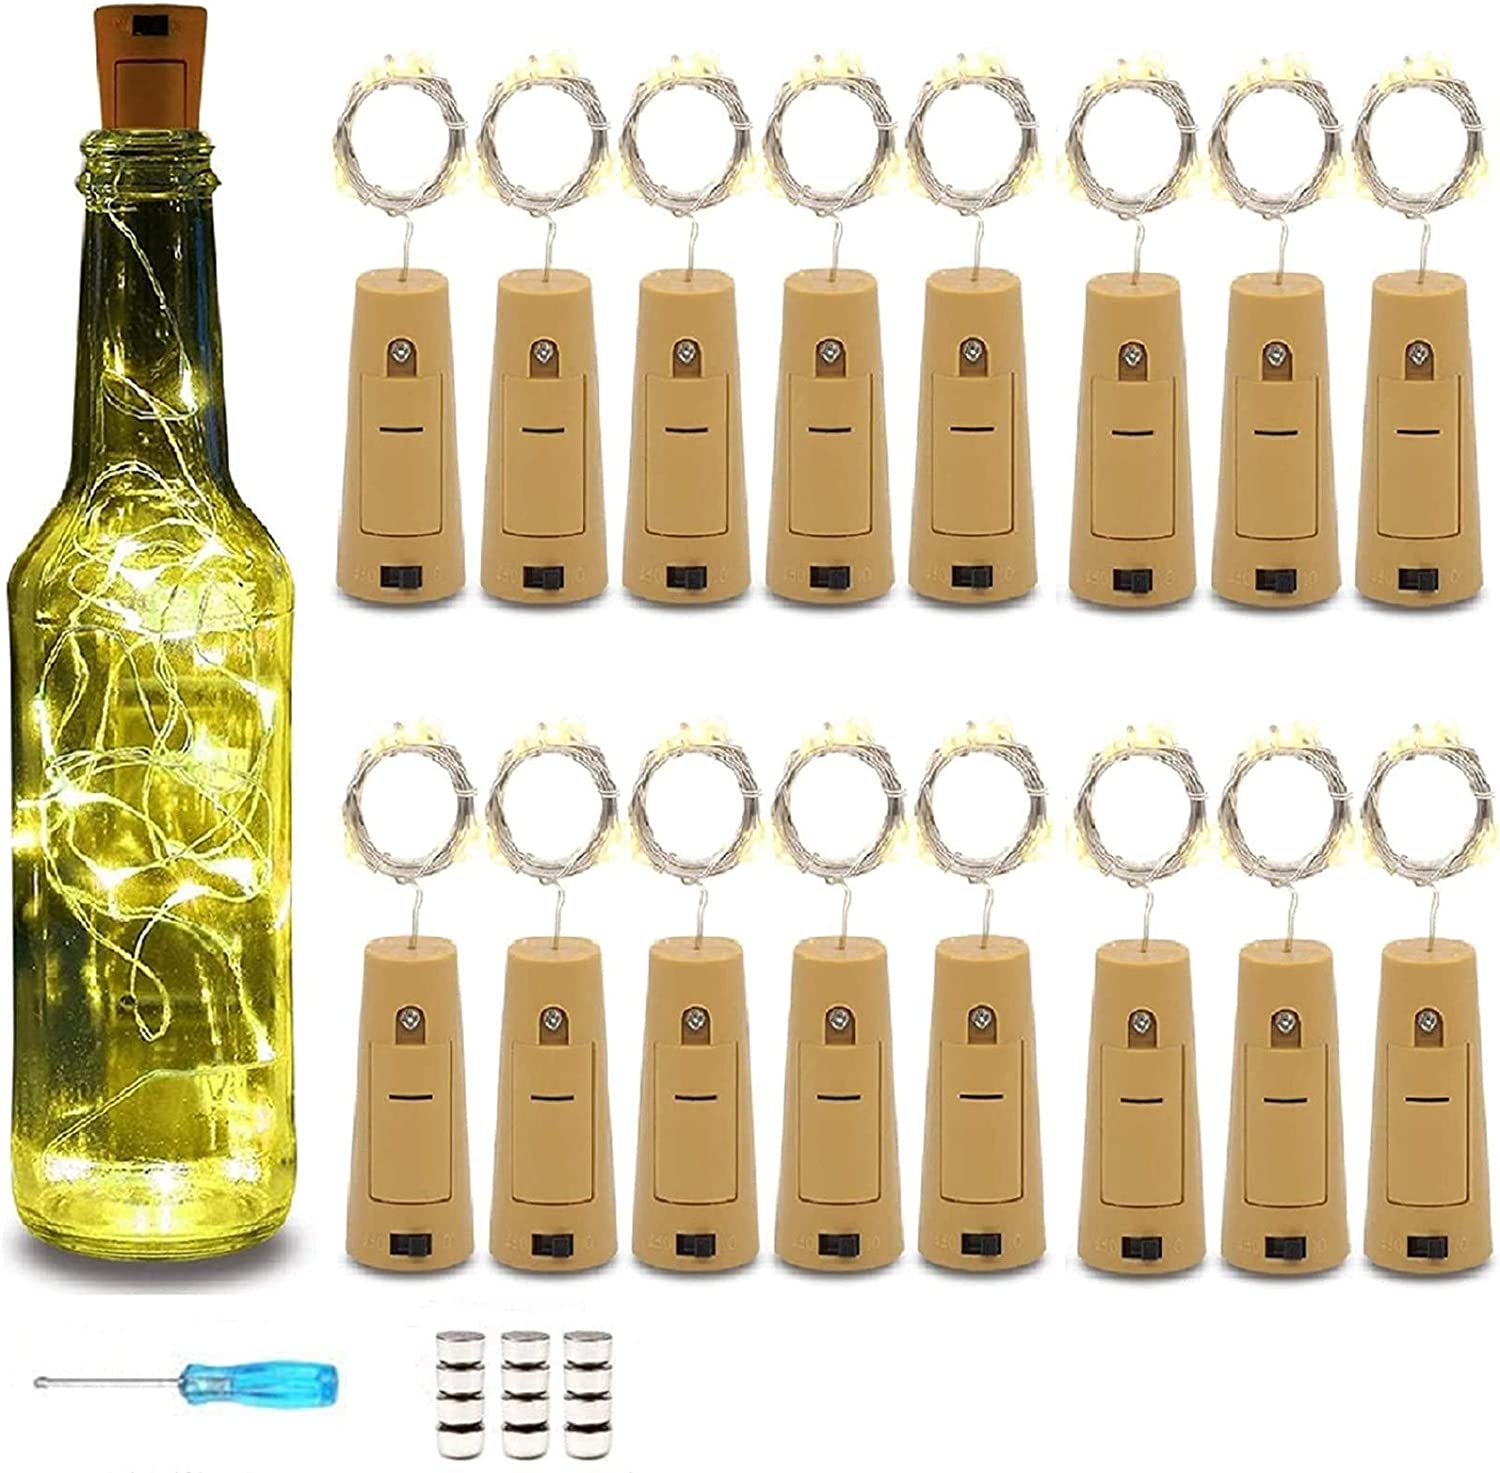 Wine Bottle Lights with Cork 16 Pack 15LED, Battery Operated The Fairy Mini Copper Wire Cork Lights is 4.92 Feet Used for Mason Jars,DIY Party Christmas Lights,Decor,Wedding(Warm White, 16 Pack)